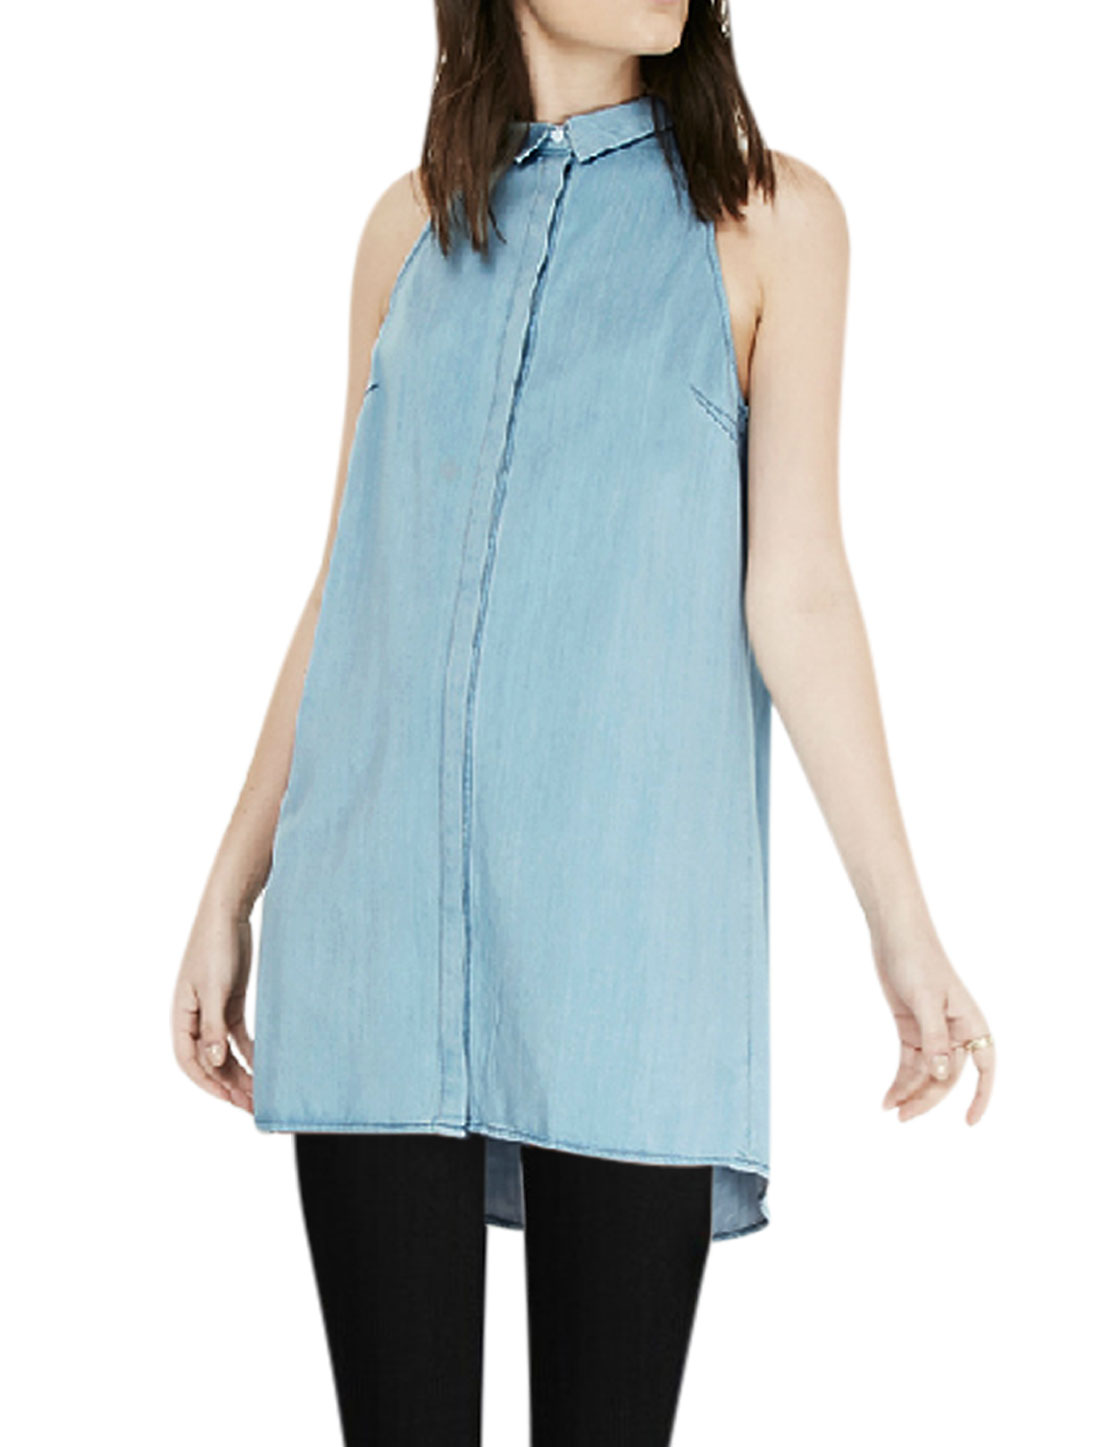 Women Sleeveless Button Down Leisure A-Line Tunic Shirts Blouse Sky Blue M